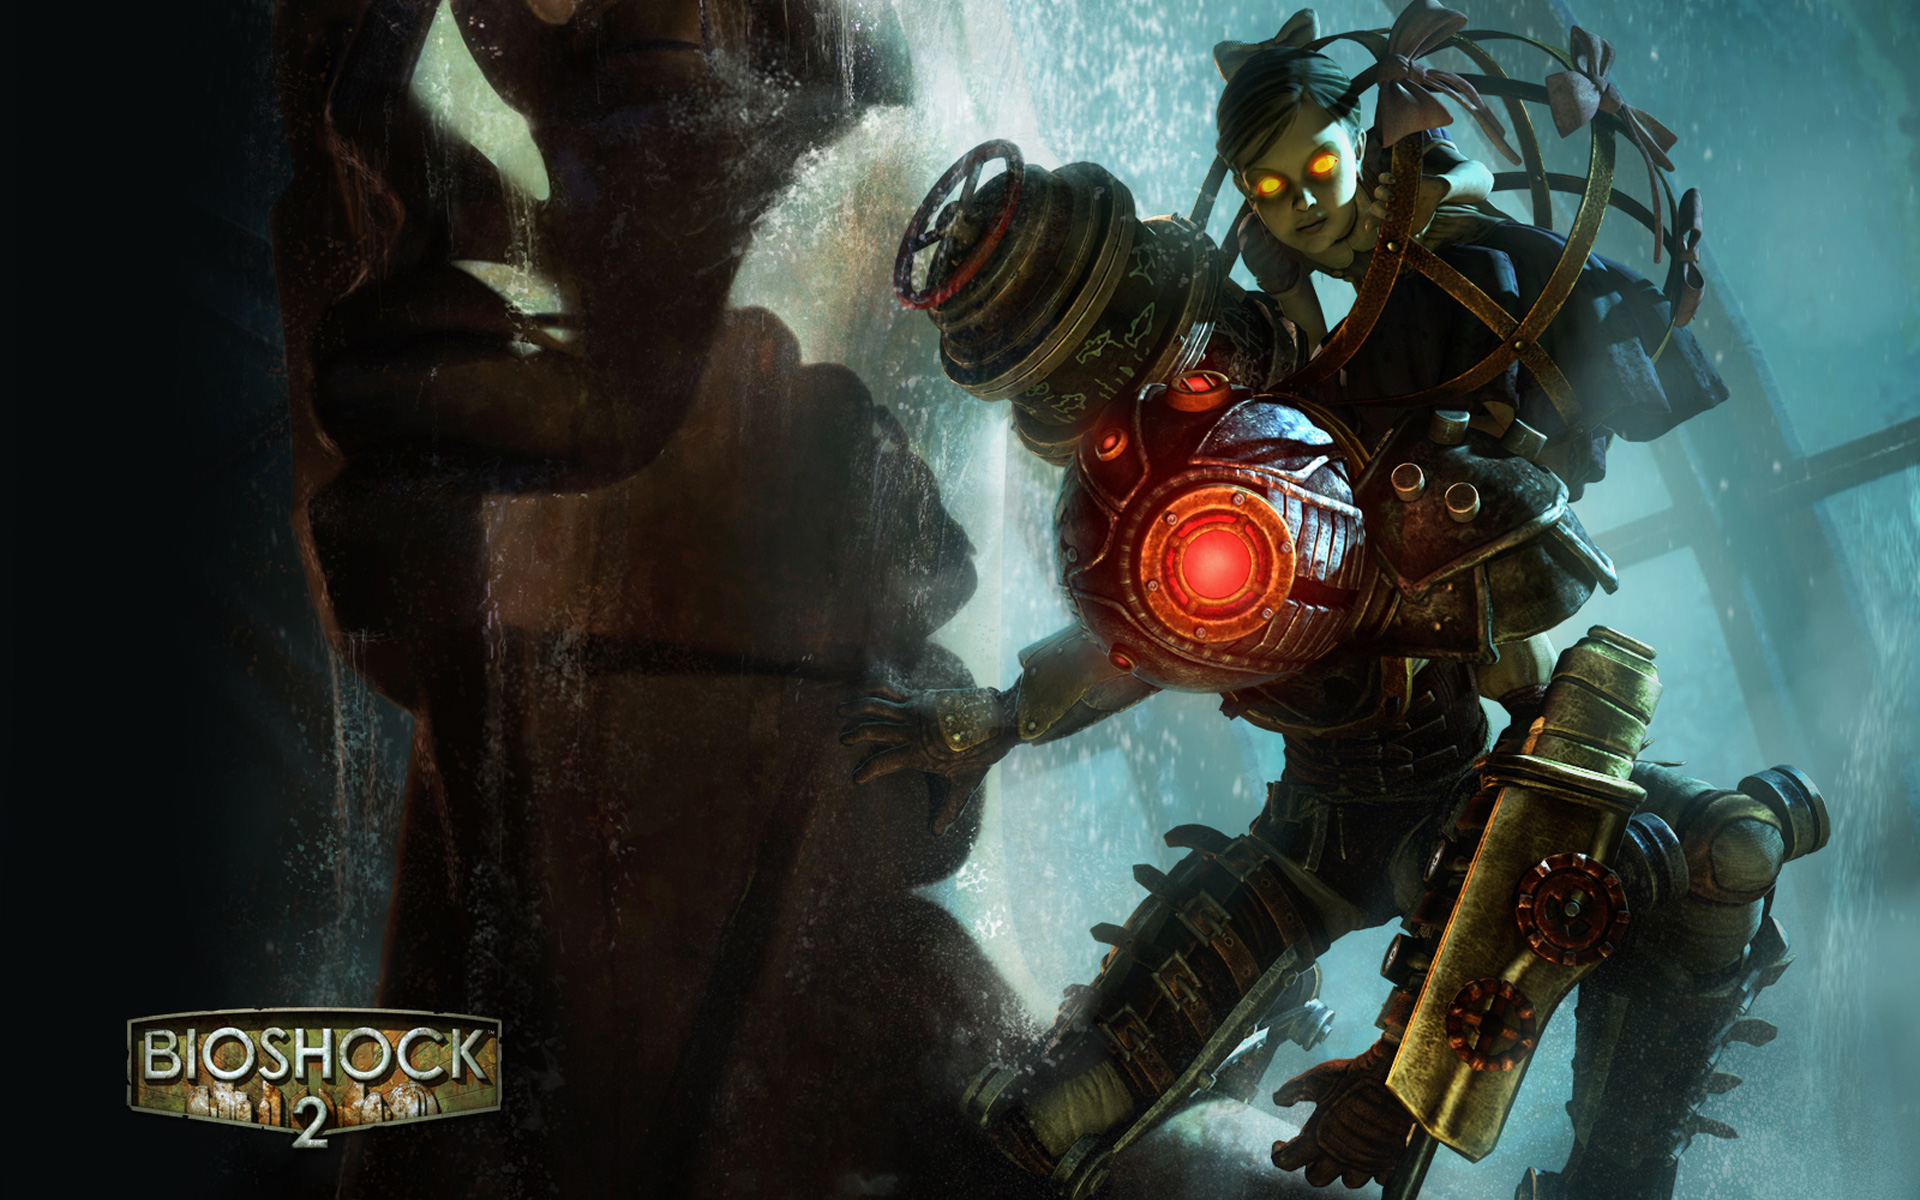 Free Bioshock 2 Wallpaper in 1920x1200